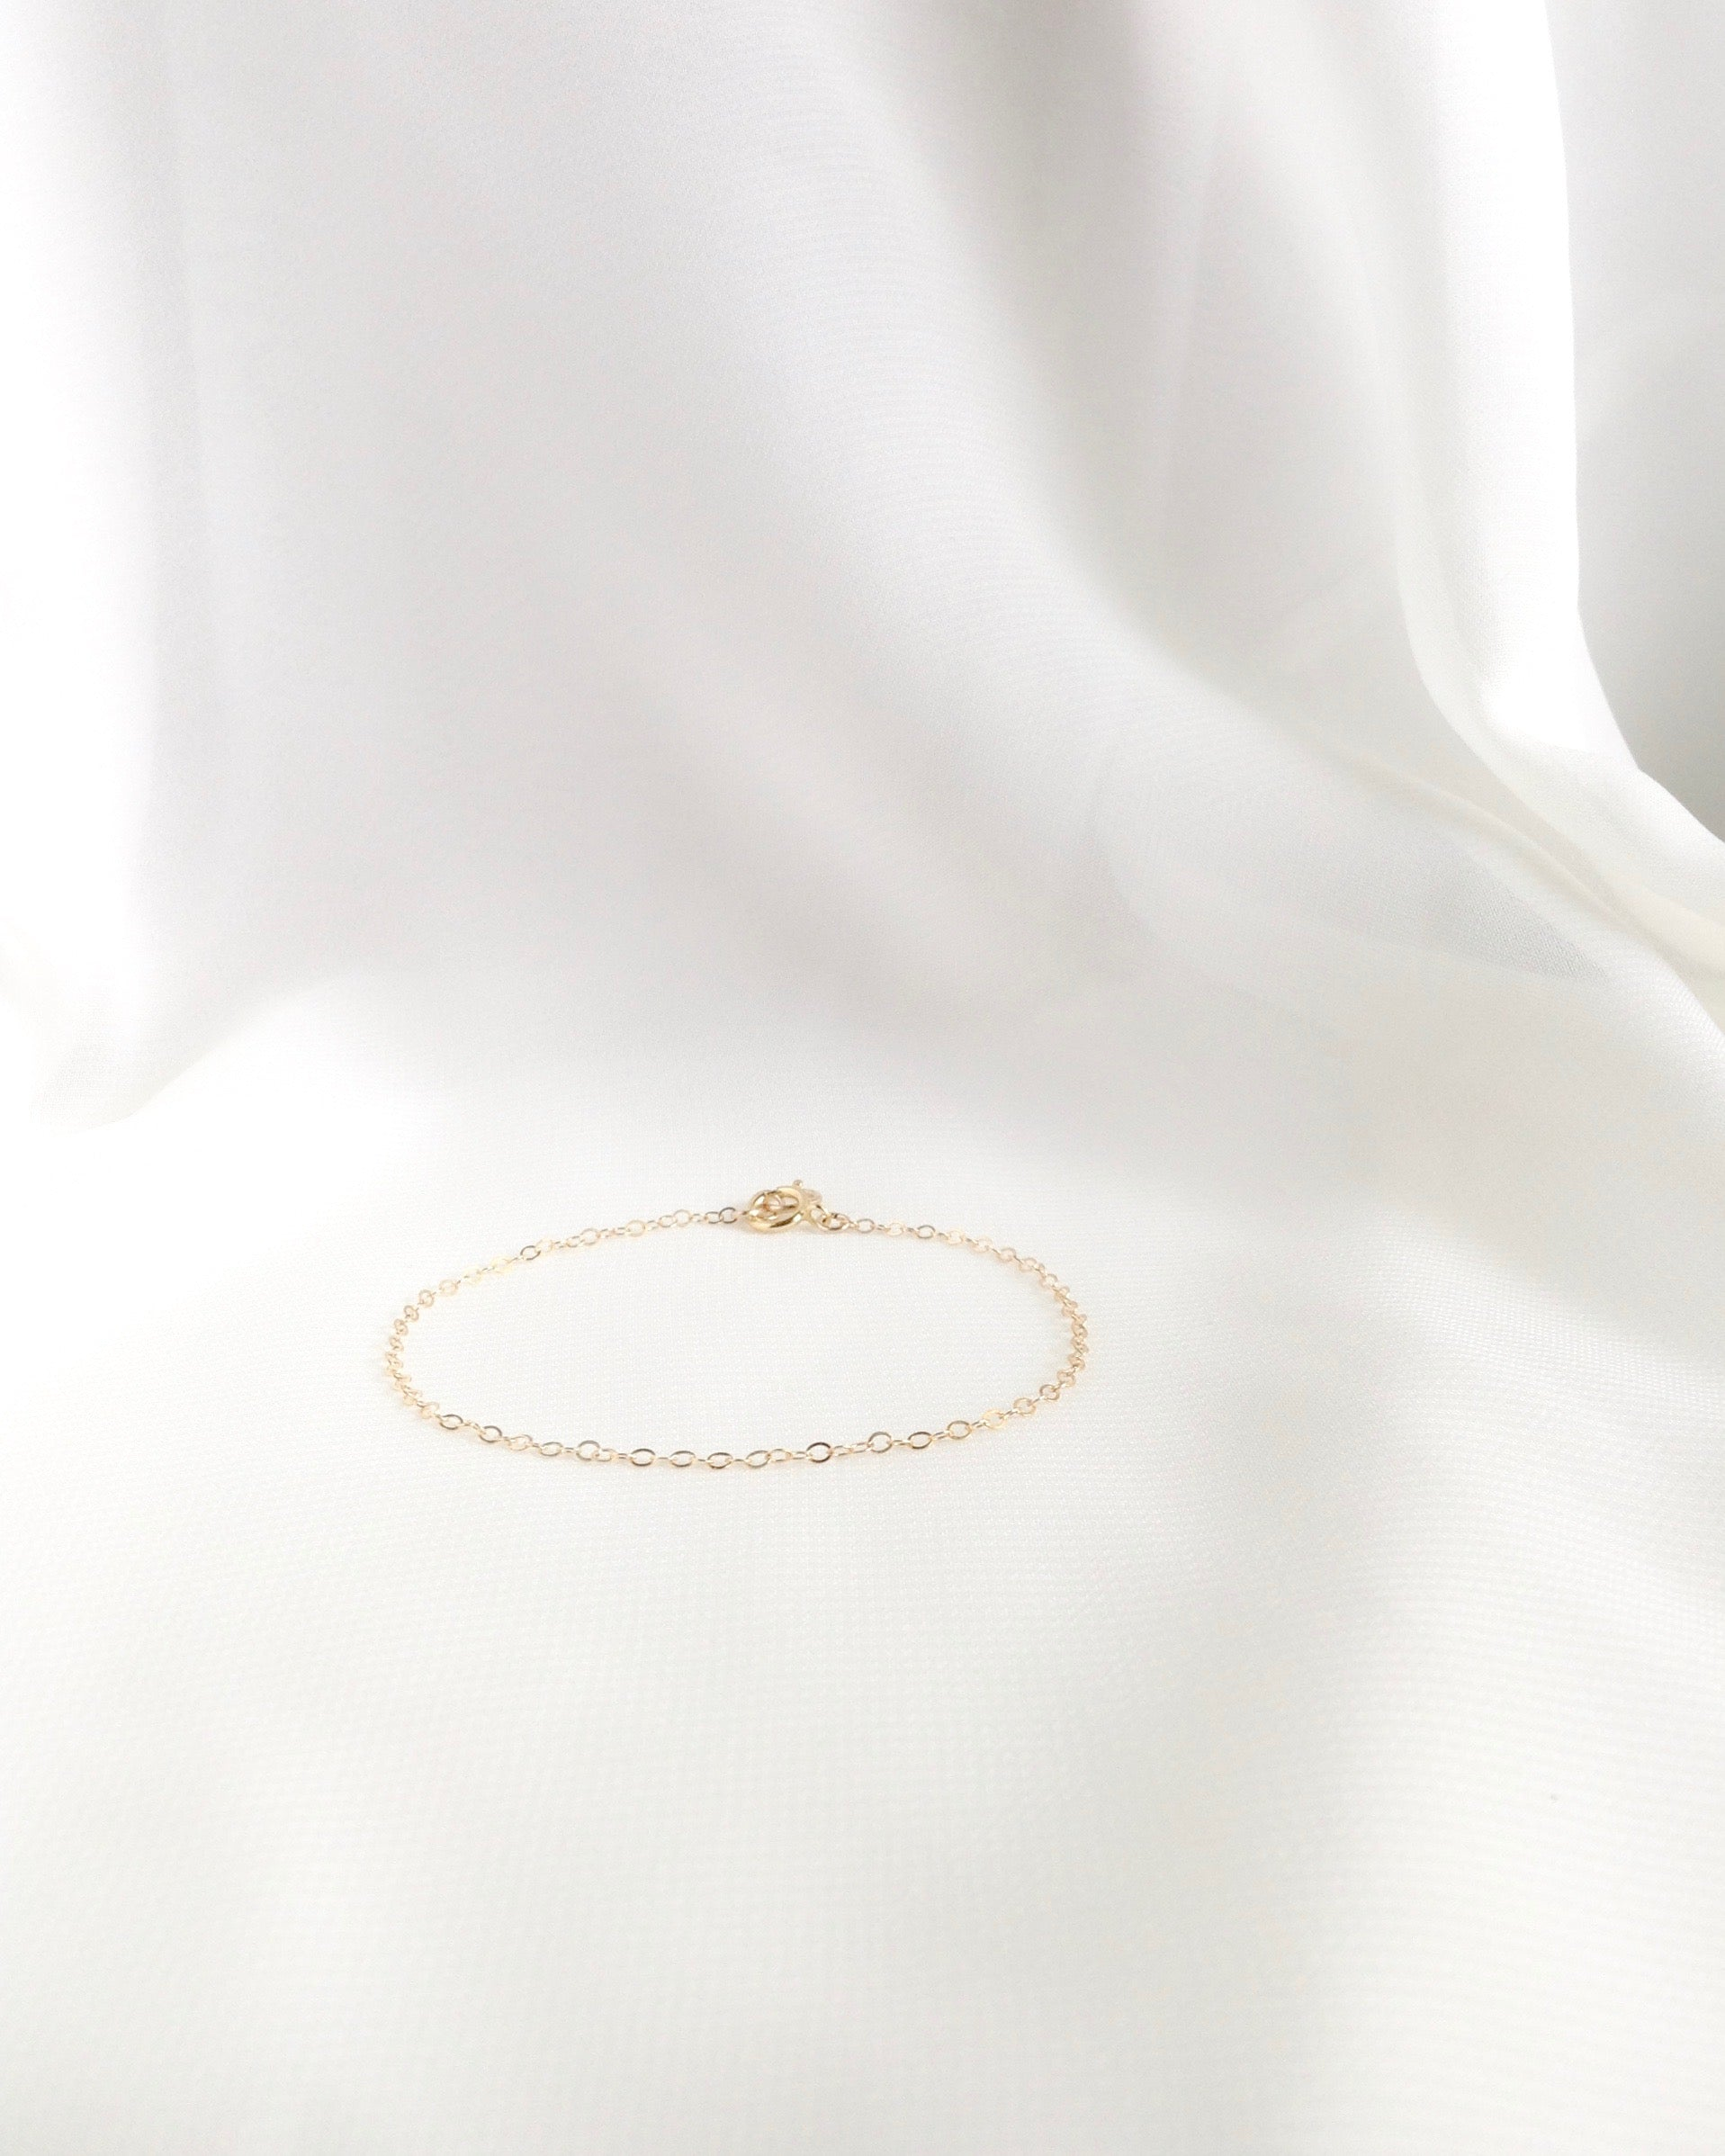 Simple Dainty Bracelet in Gold Filled or Sterling Silver | IB Jewelry